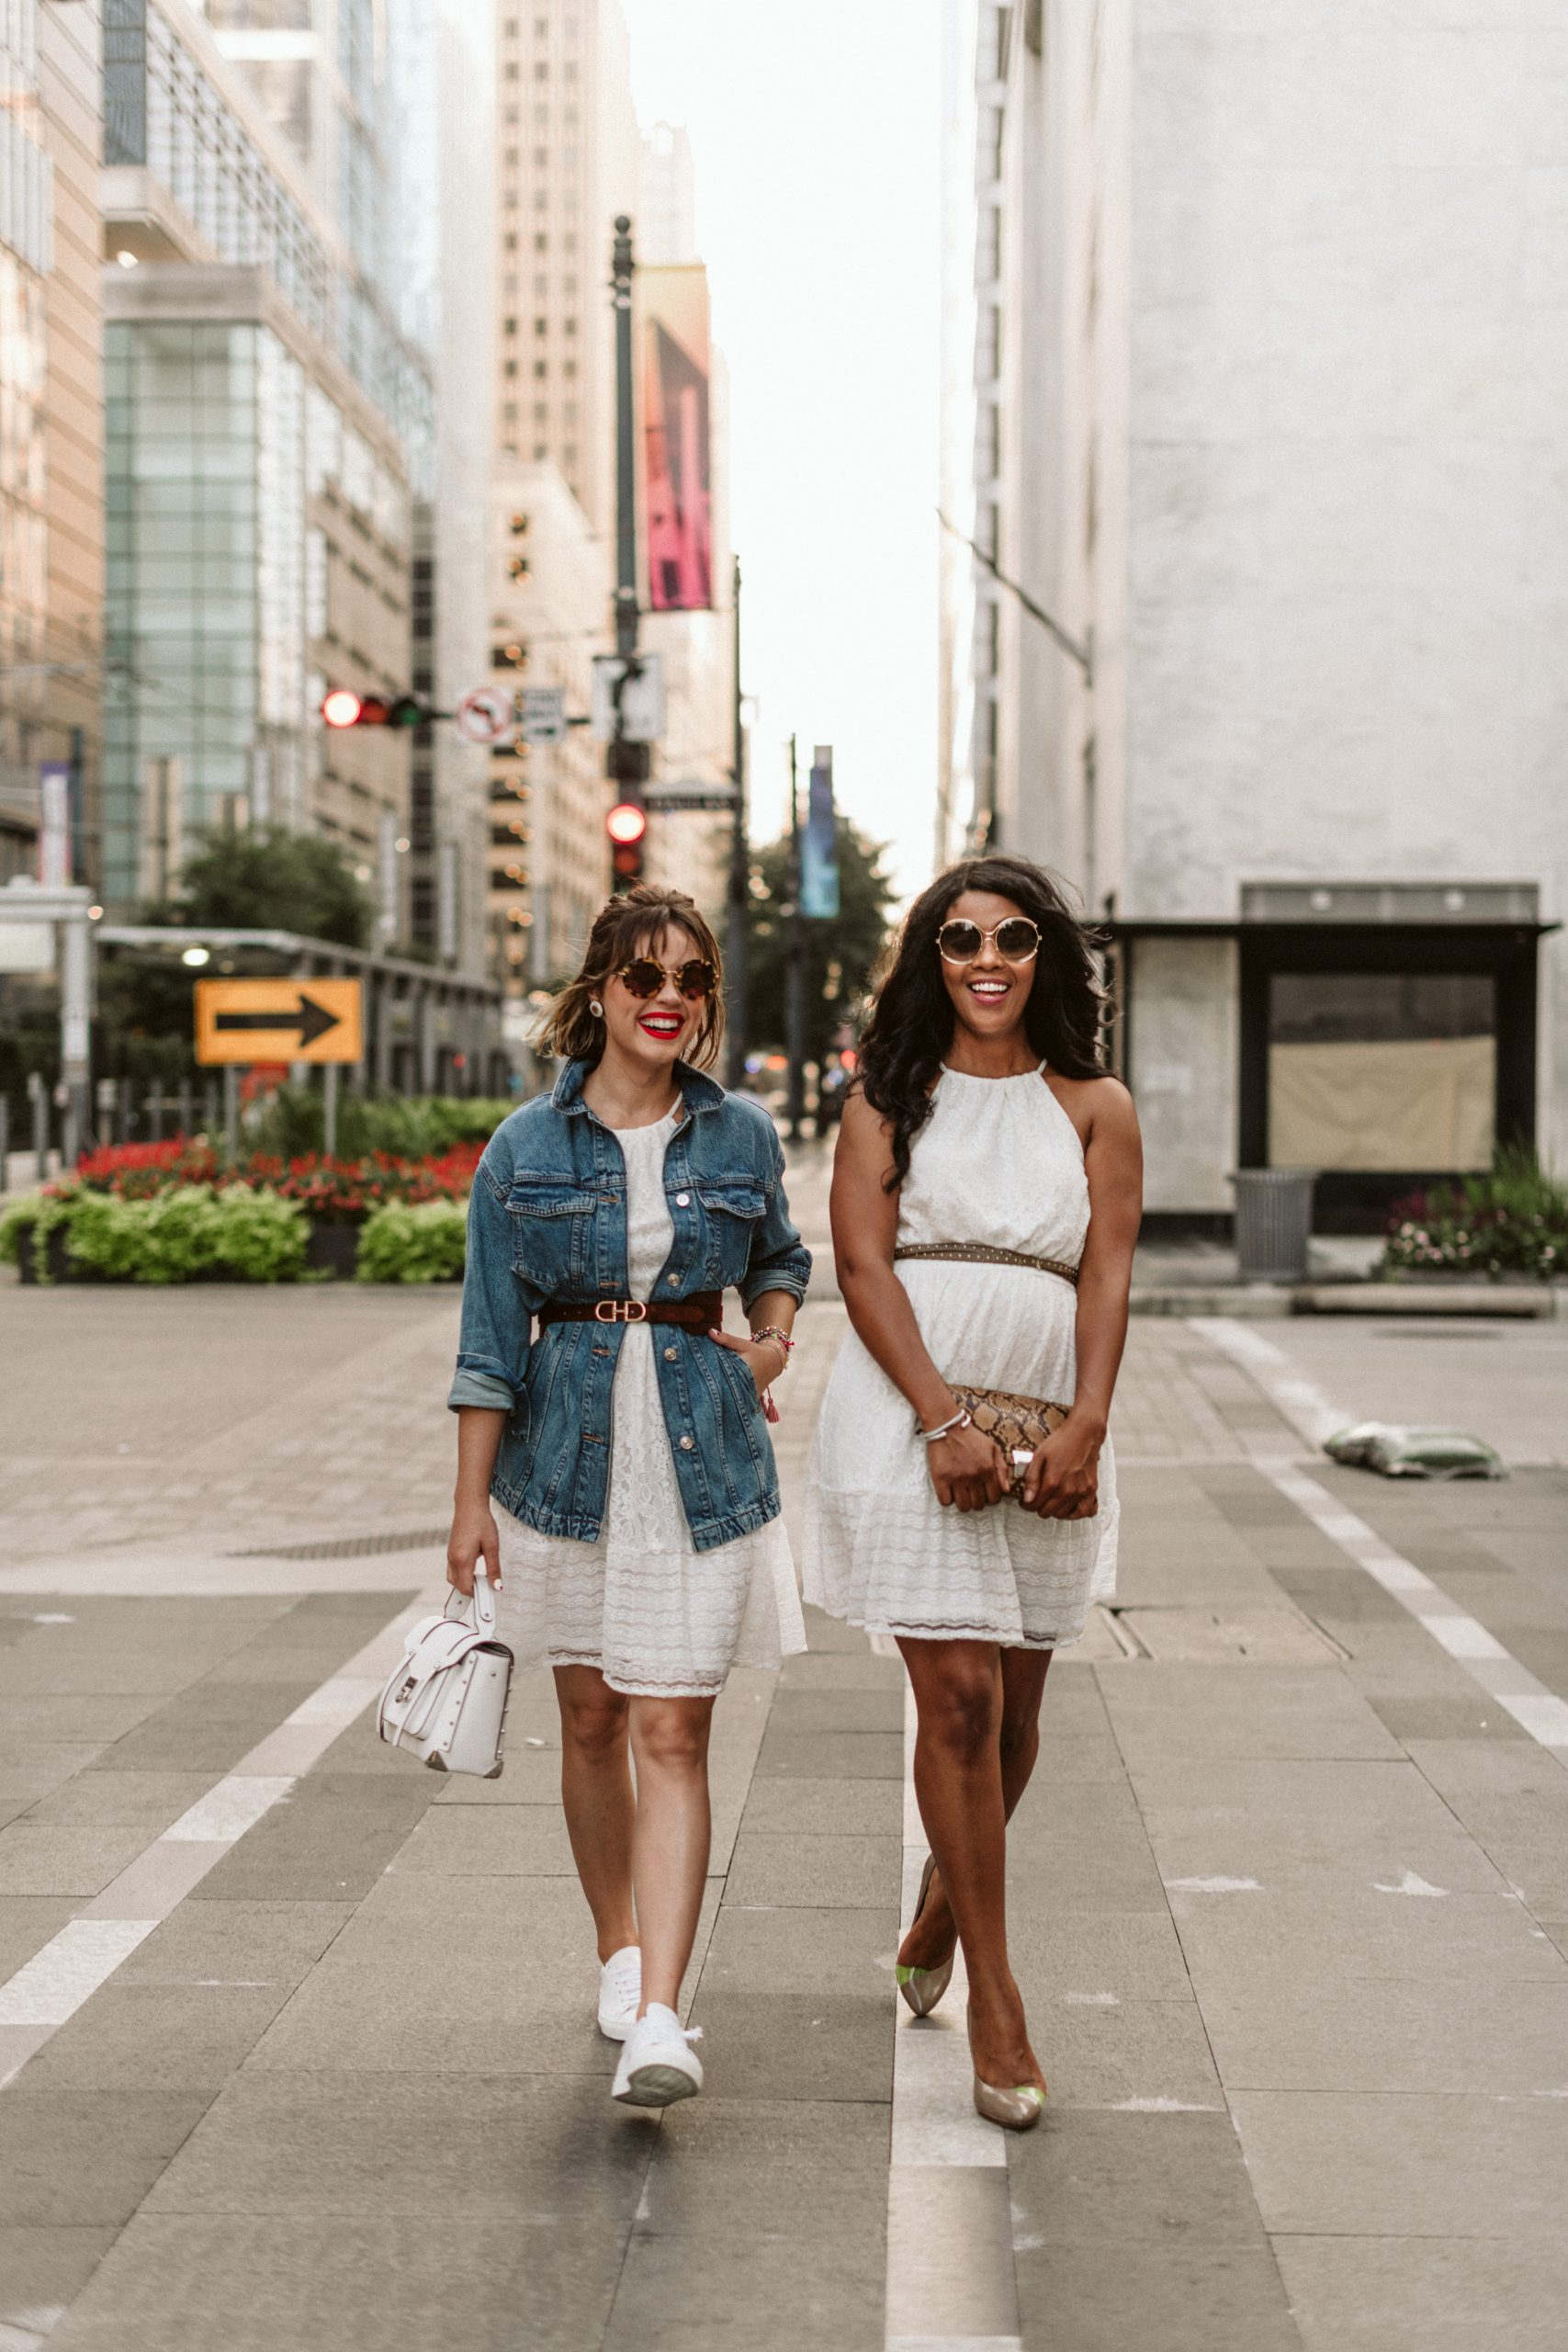 Looking for a cute and breezy White Lace Dress for summer? Elly Brown teams up with Daphne from Simply Daph to share how to style it two ways!